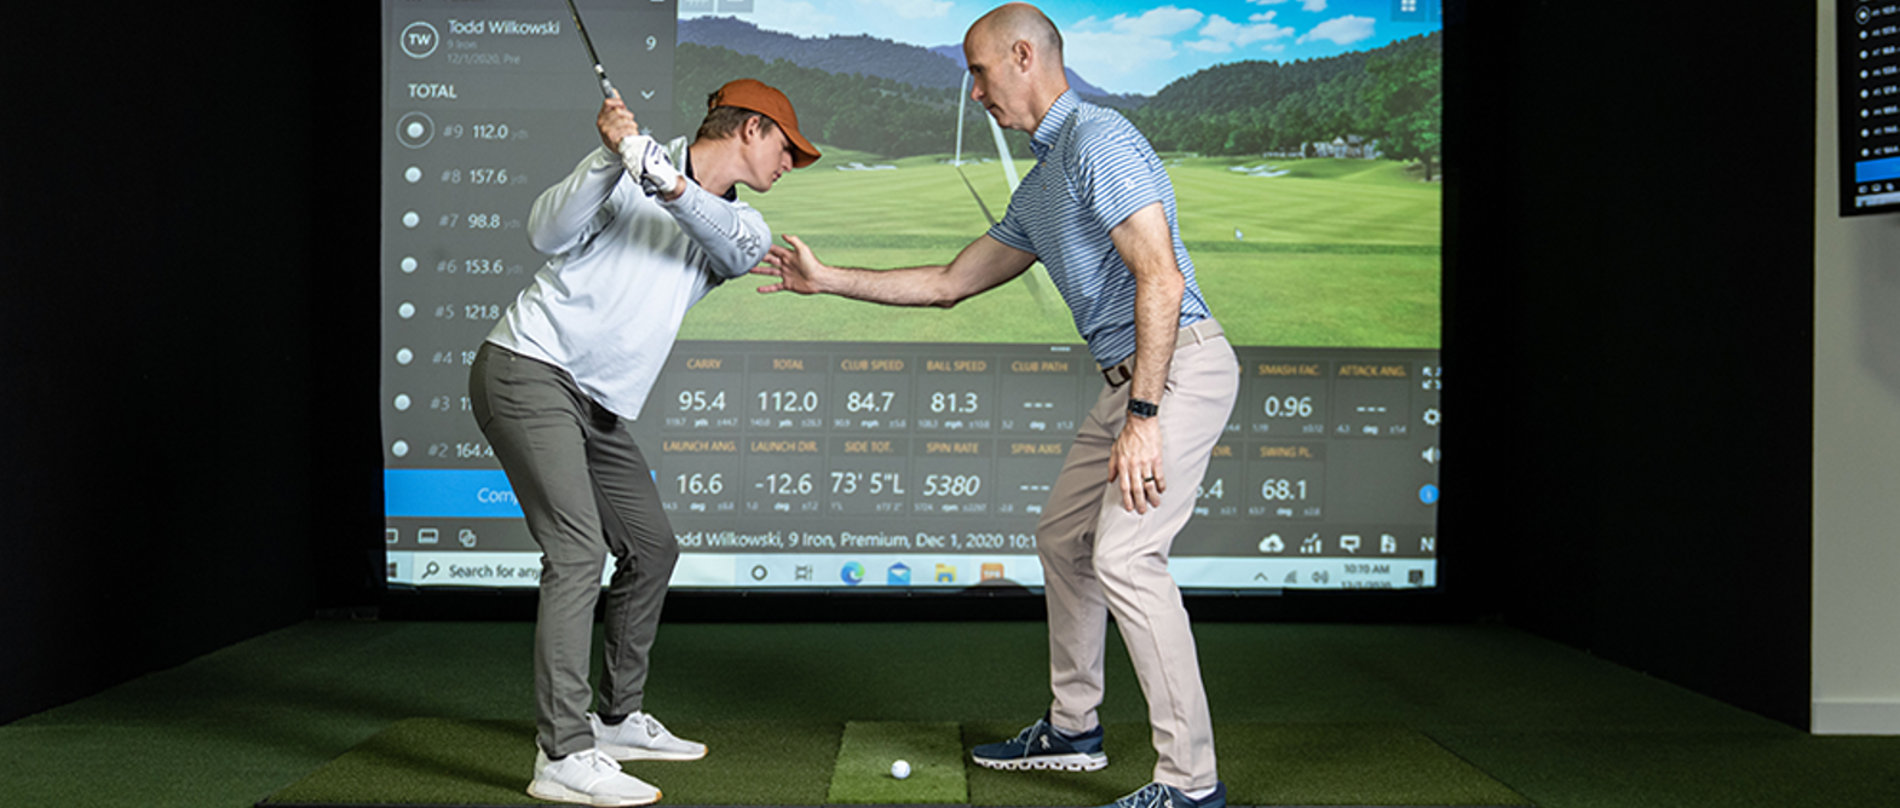 trainer coaching a client on the golf simulator